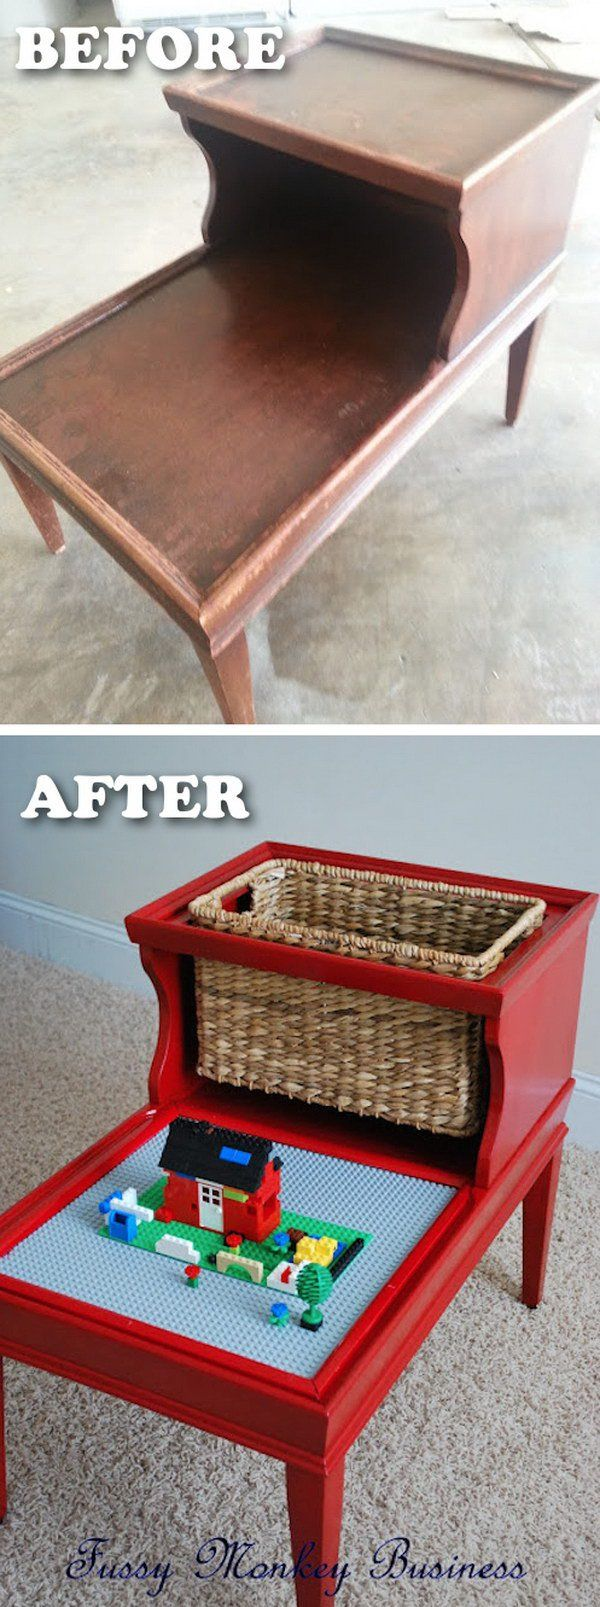 diy furniture makeover ideas. the 25 best furniture makeover ideas on pinterest refinished redo and refurbished diy